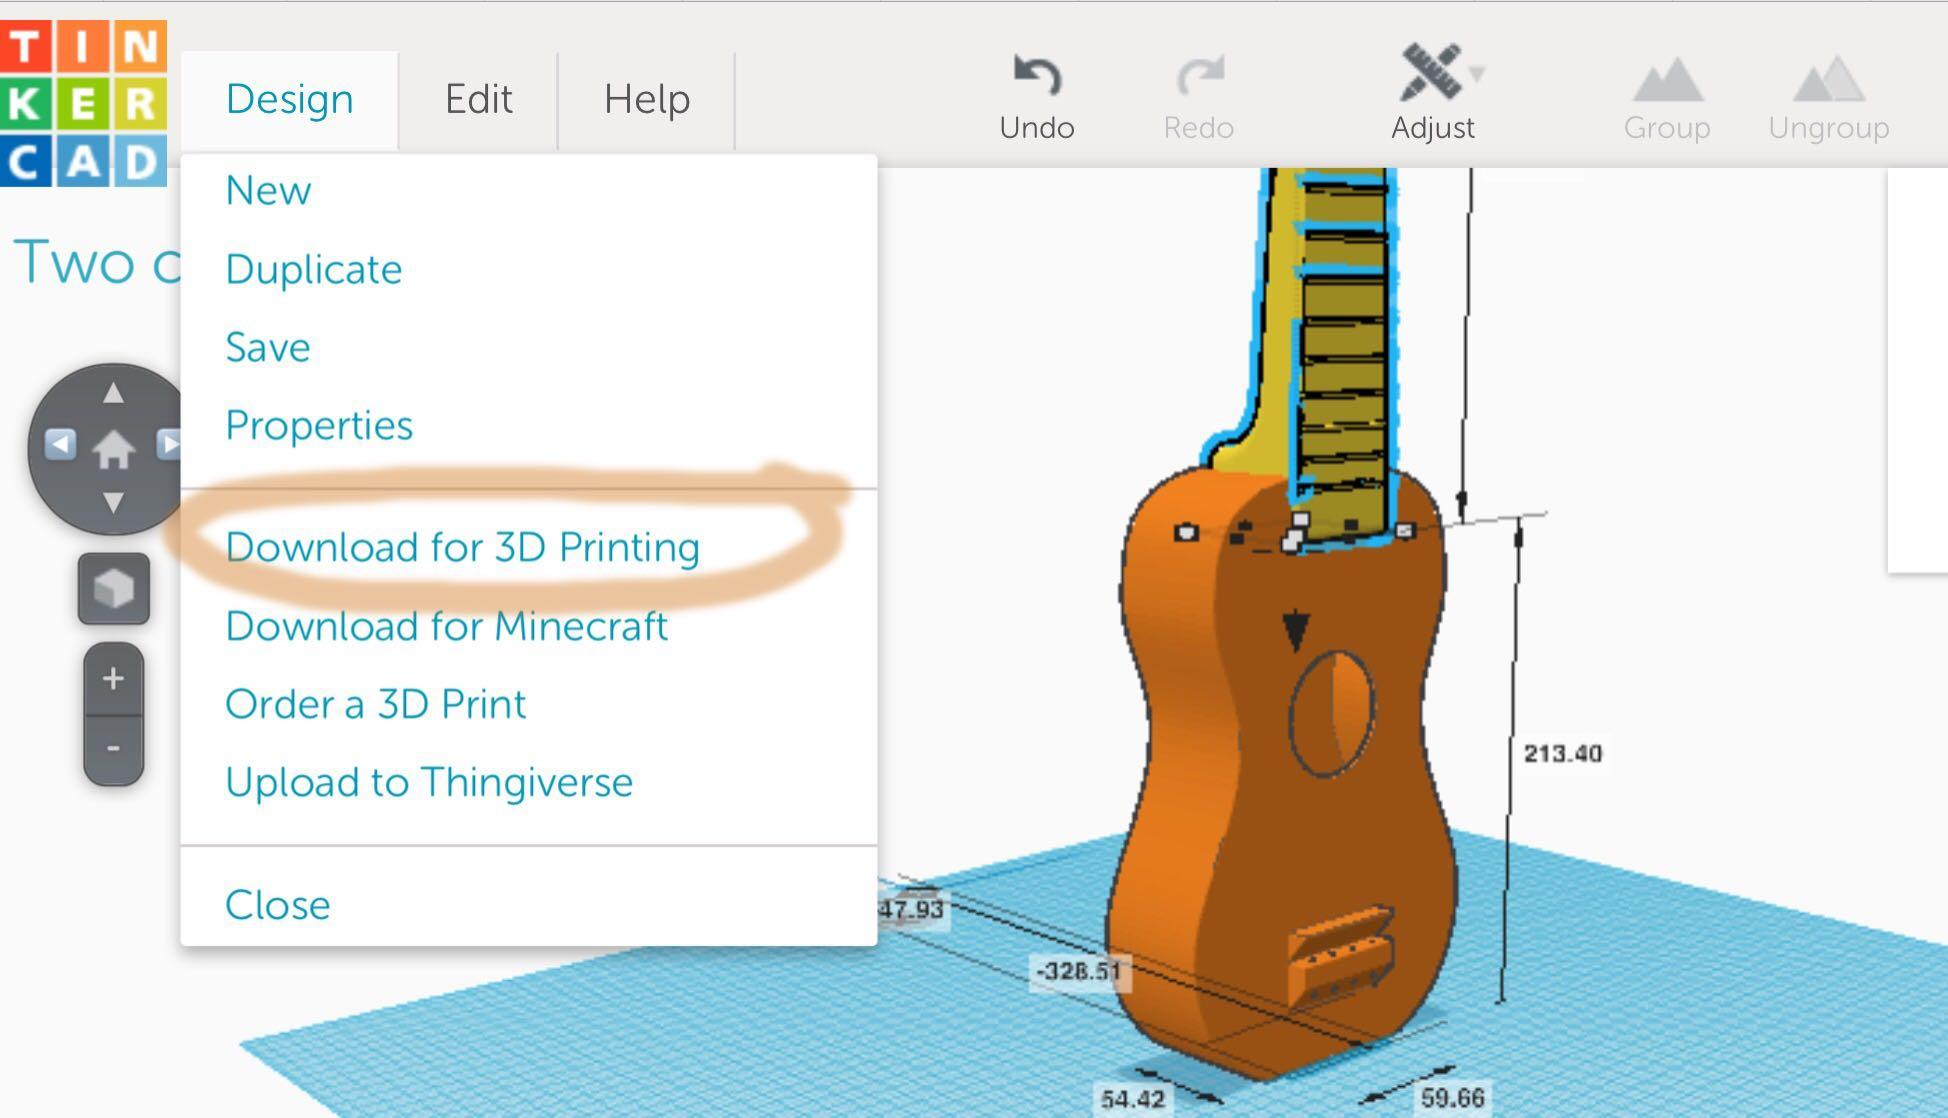 Dual extrusion 3d printing a ukulele case study Tinkercad 3d